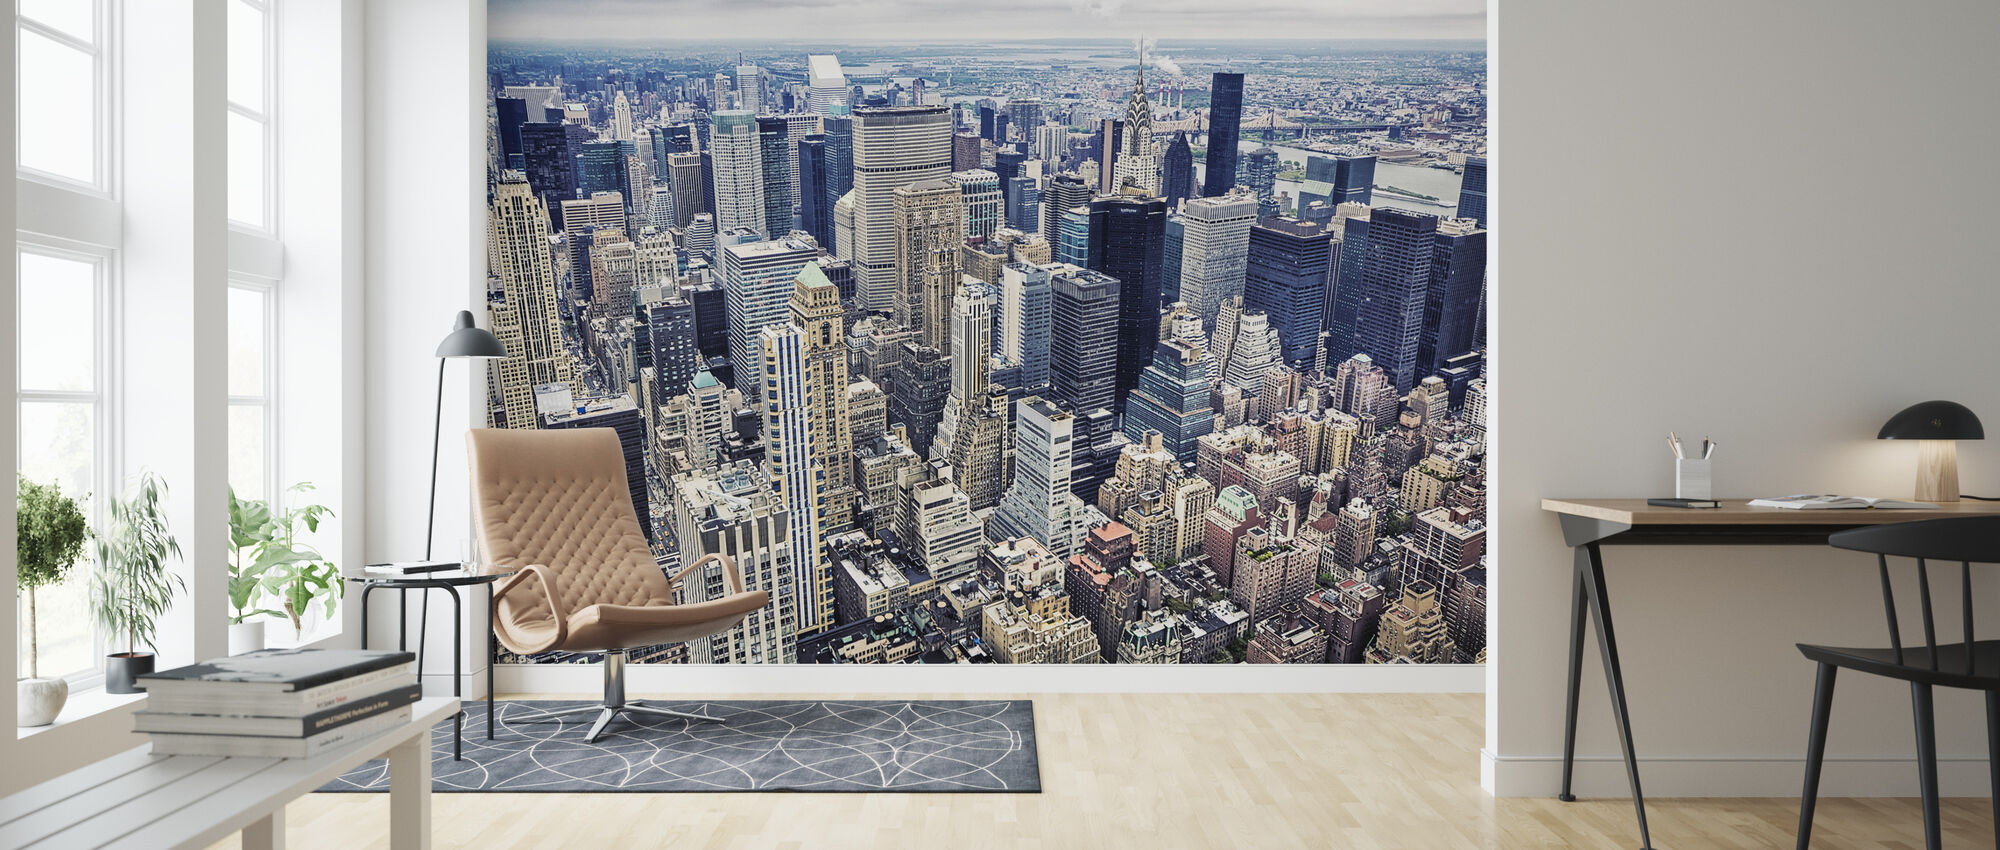 Aerial View of Manhattan - Wallpaper - Living Room